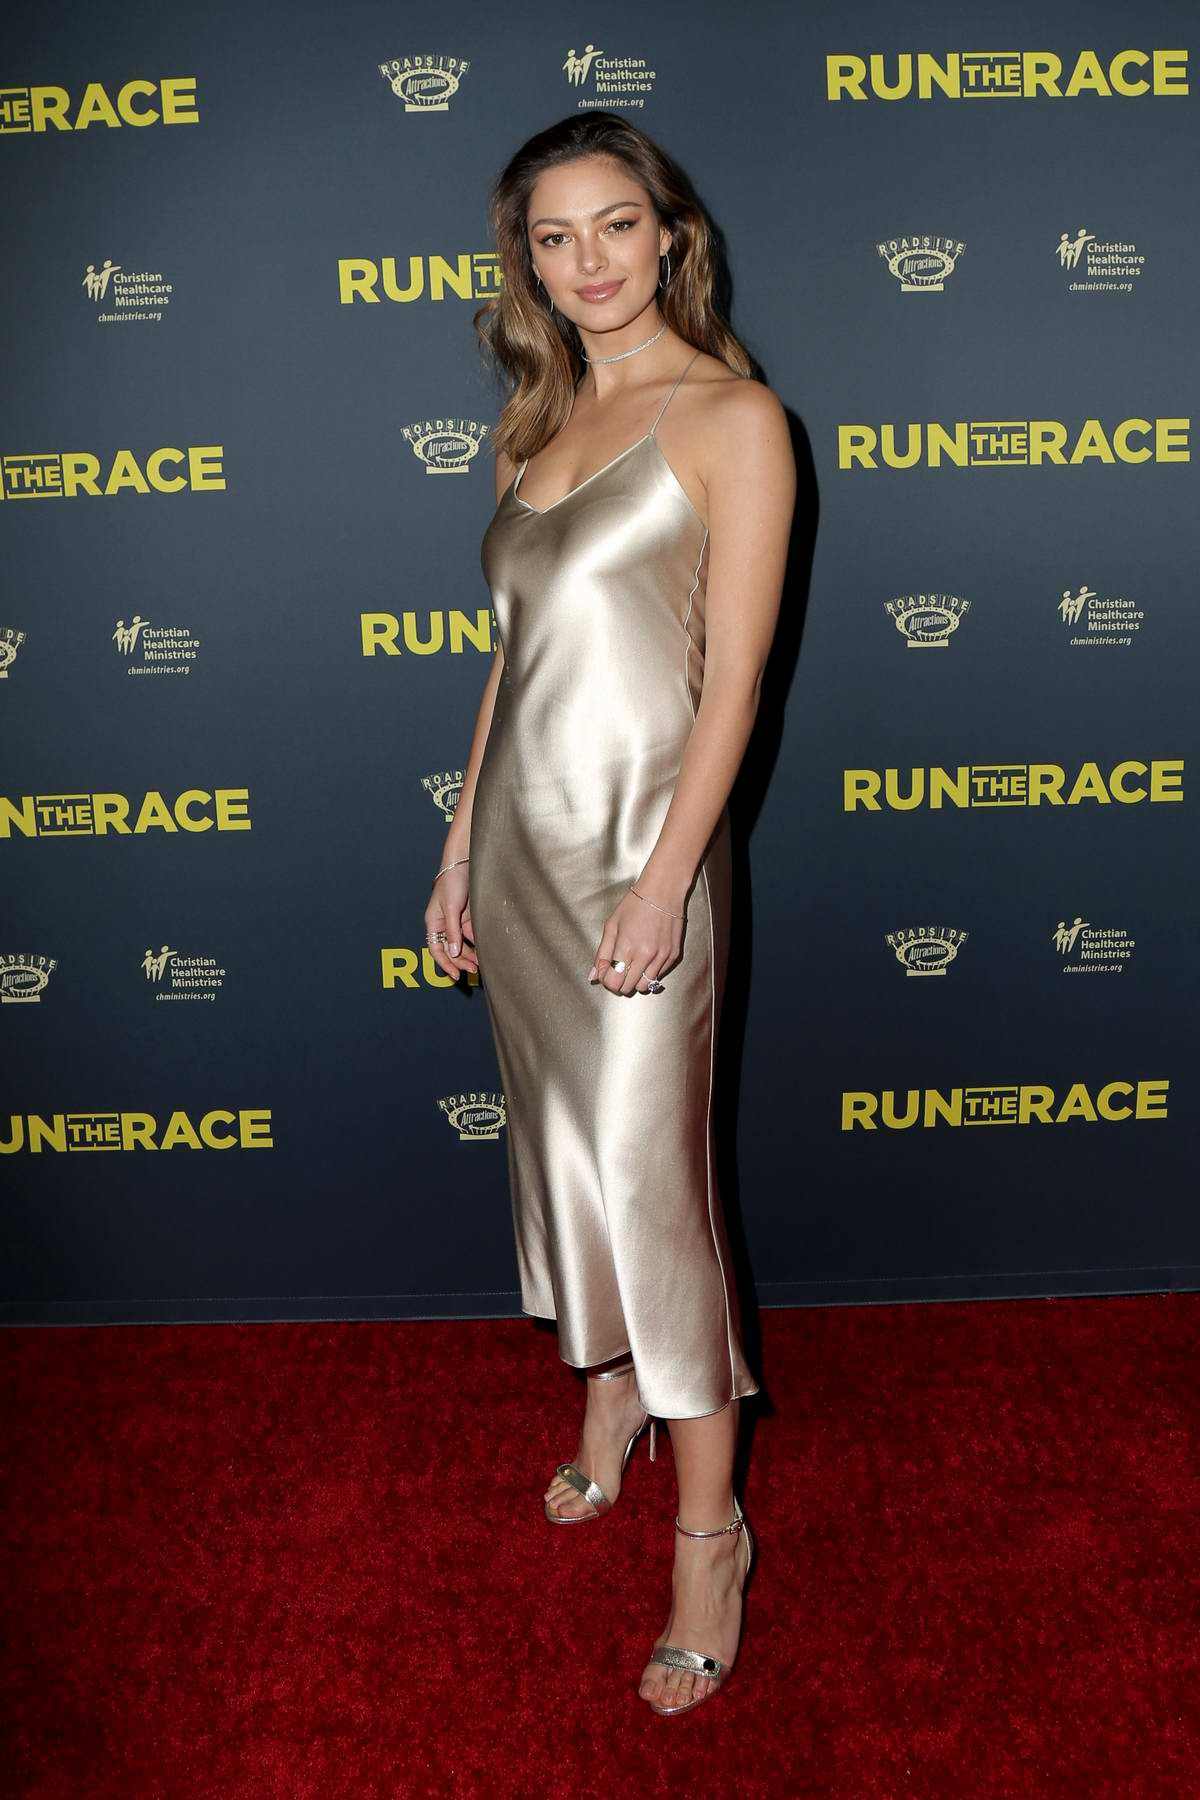 Demi-Leigh Nel-Peters attends the premiere of Roadside Attractions' 'Run The Race' in Hollywood, Los Angeles